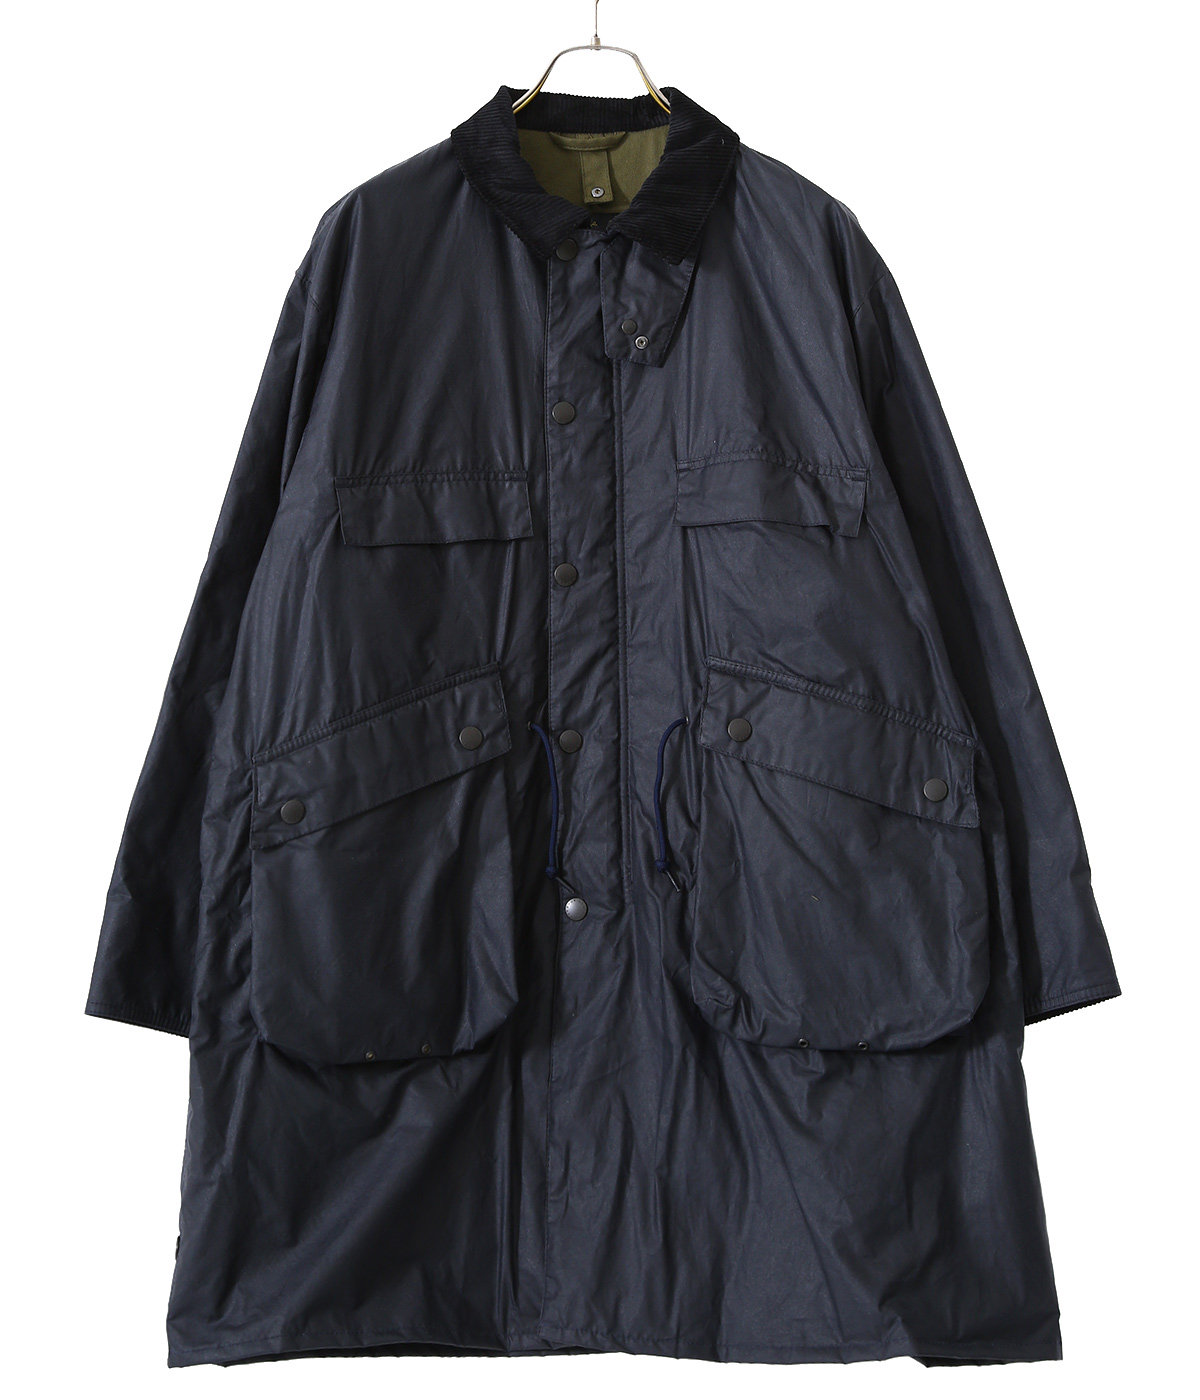 ×Barbour Stand Collar Traveller Coat